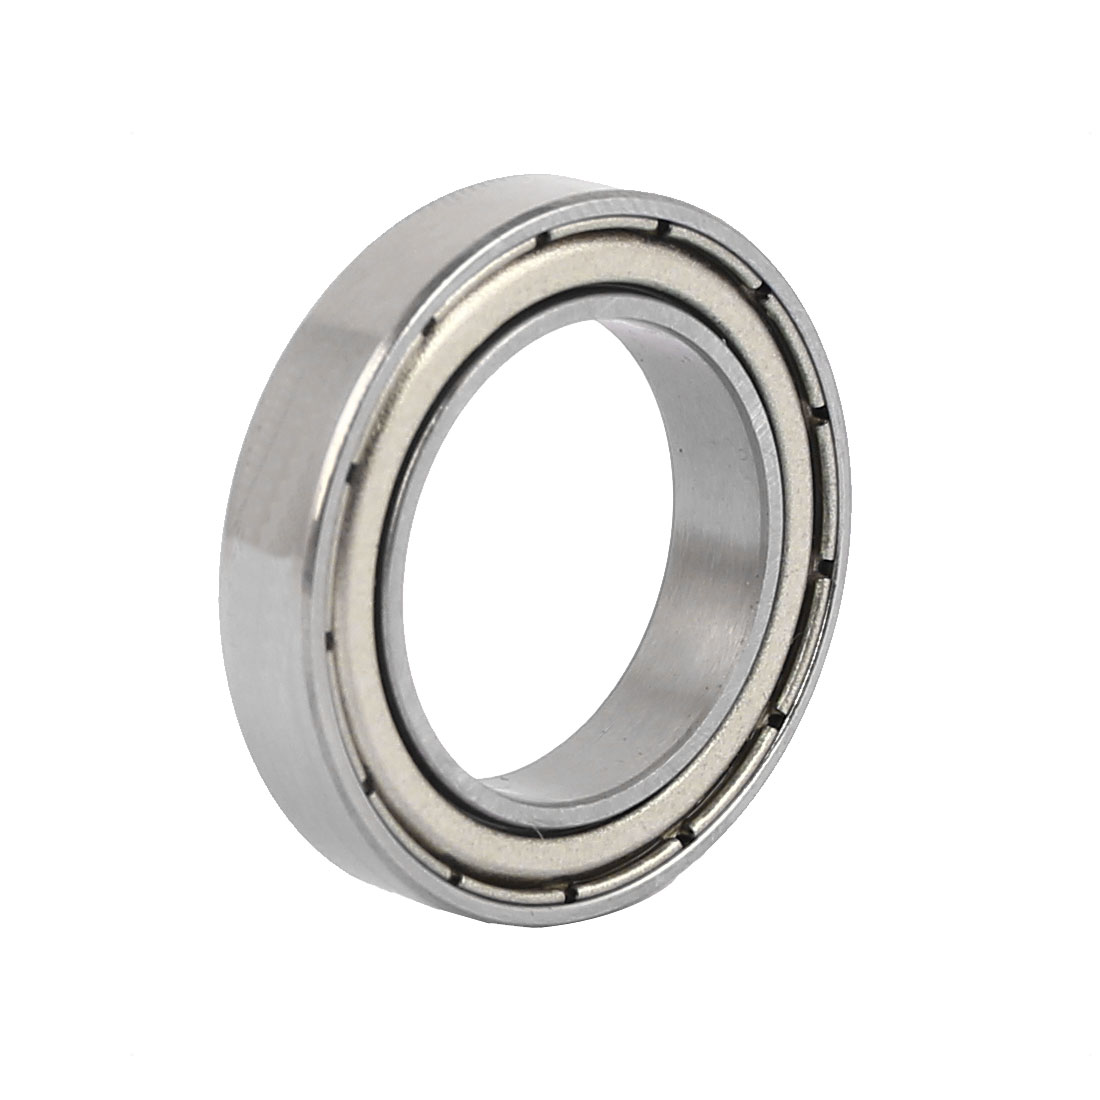 ZZ6804 20mm Inside Dia 32mm Outside Dia Double Sealed Deep Groove Ball Bearing